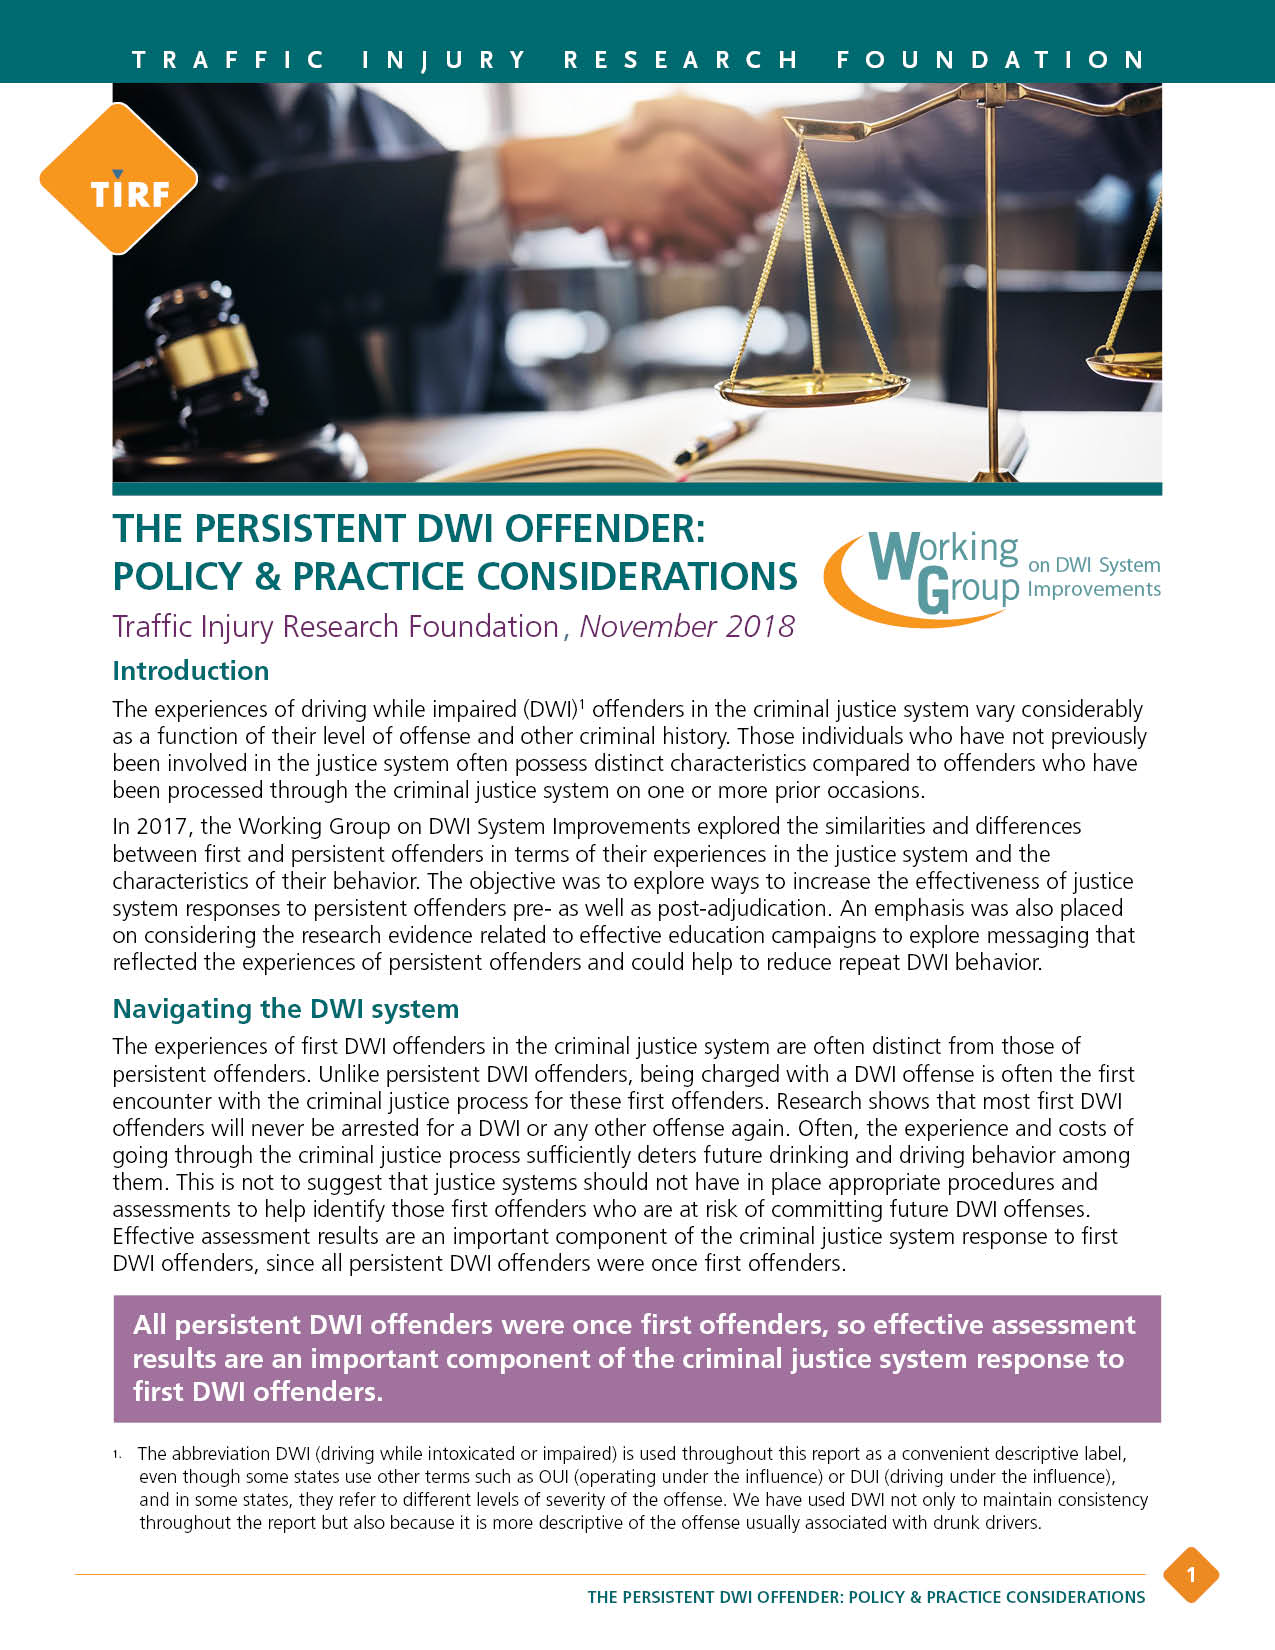 The Persistent DWI Offender Policy & Practice Considerations